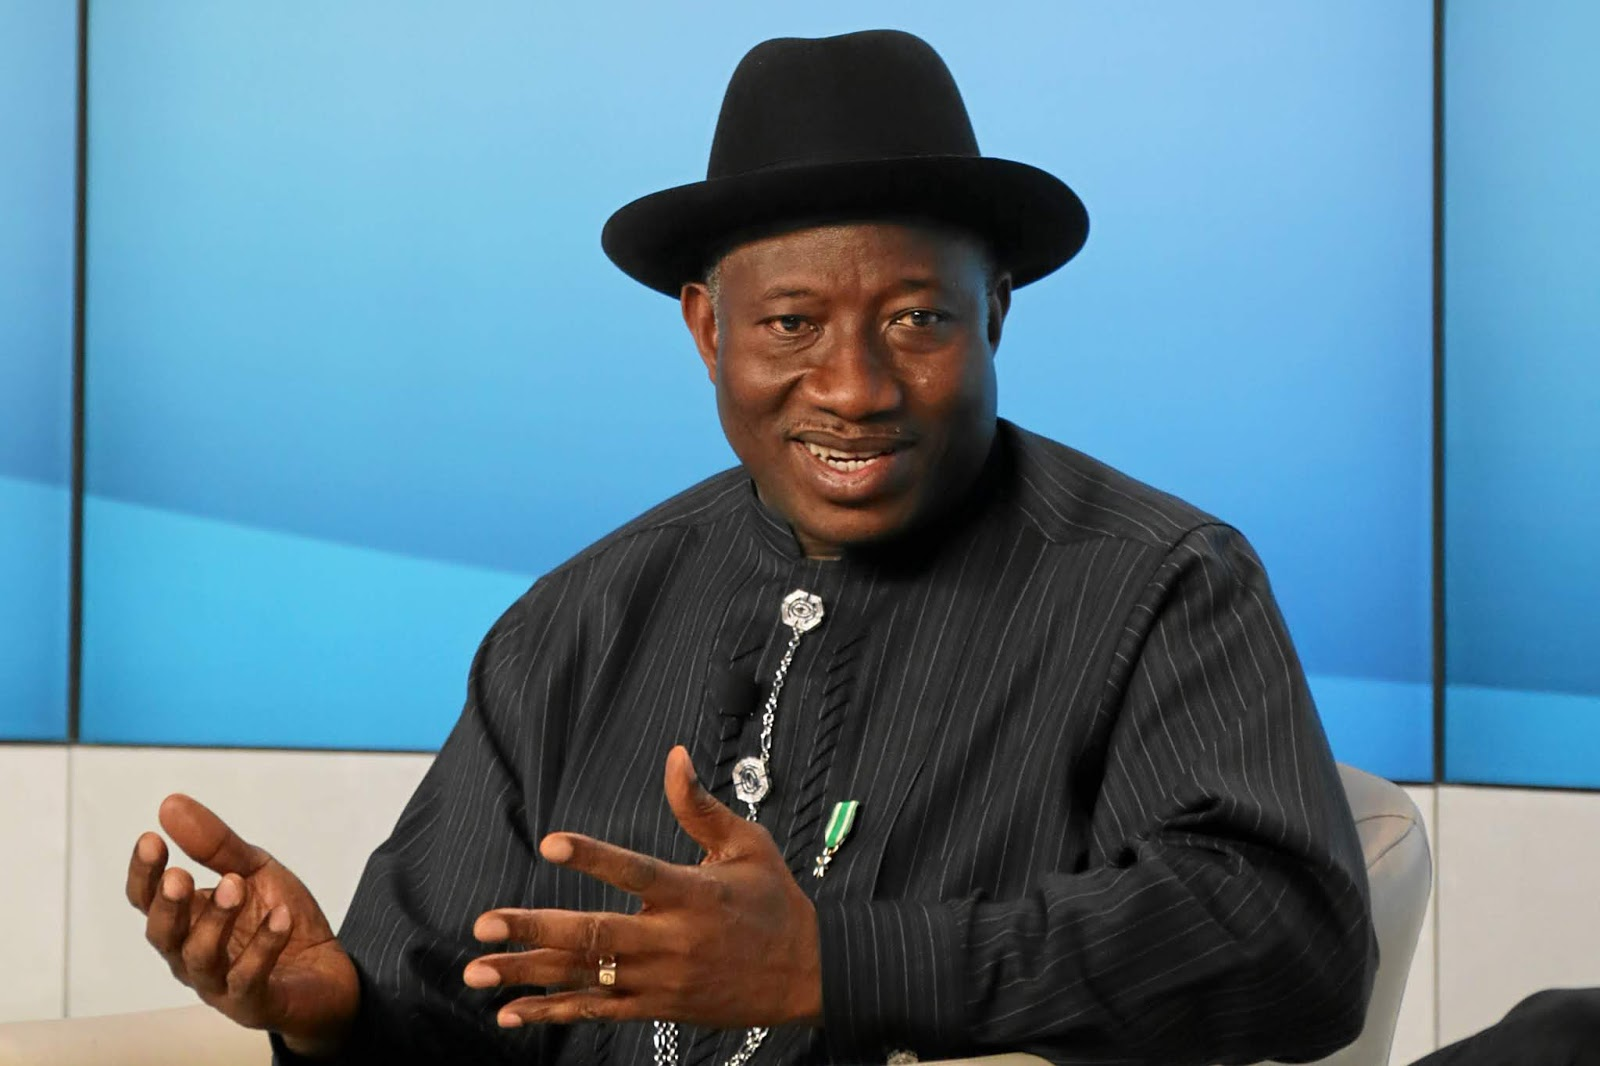 Goodluck Jonathan World Economic Forum 2013 %25282%2529 %2528cropped%2529